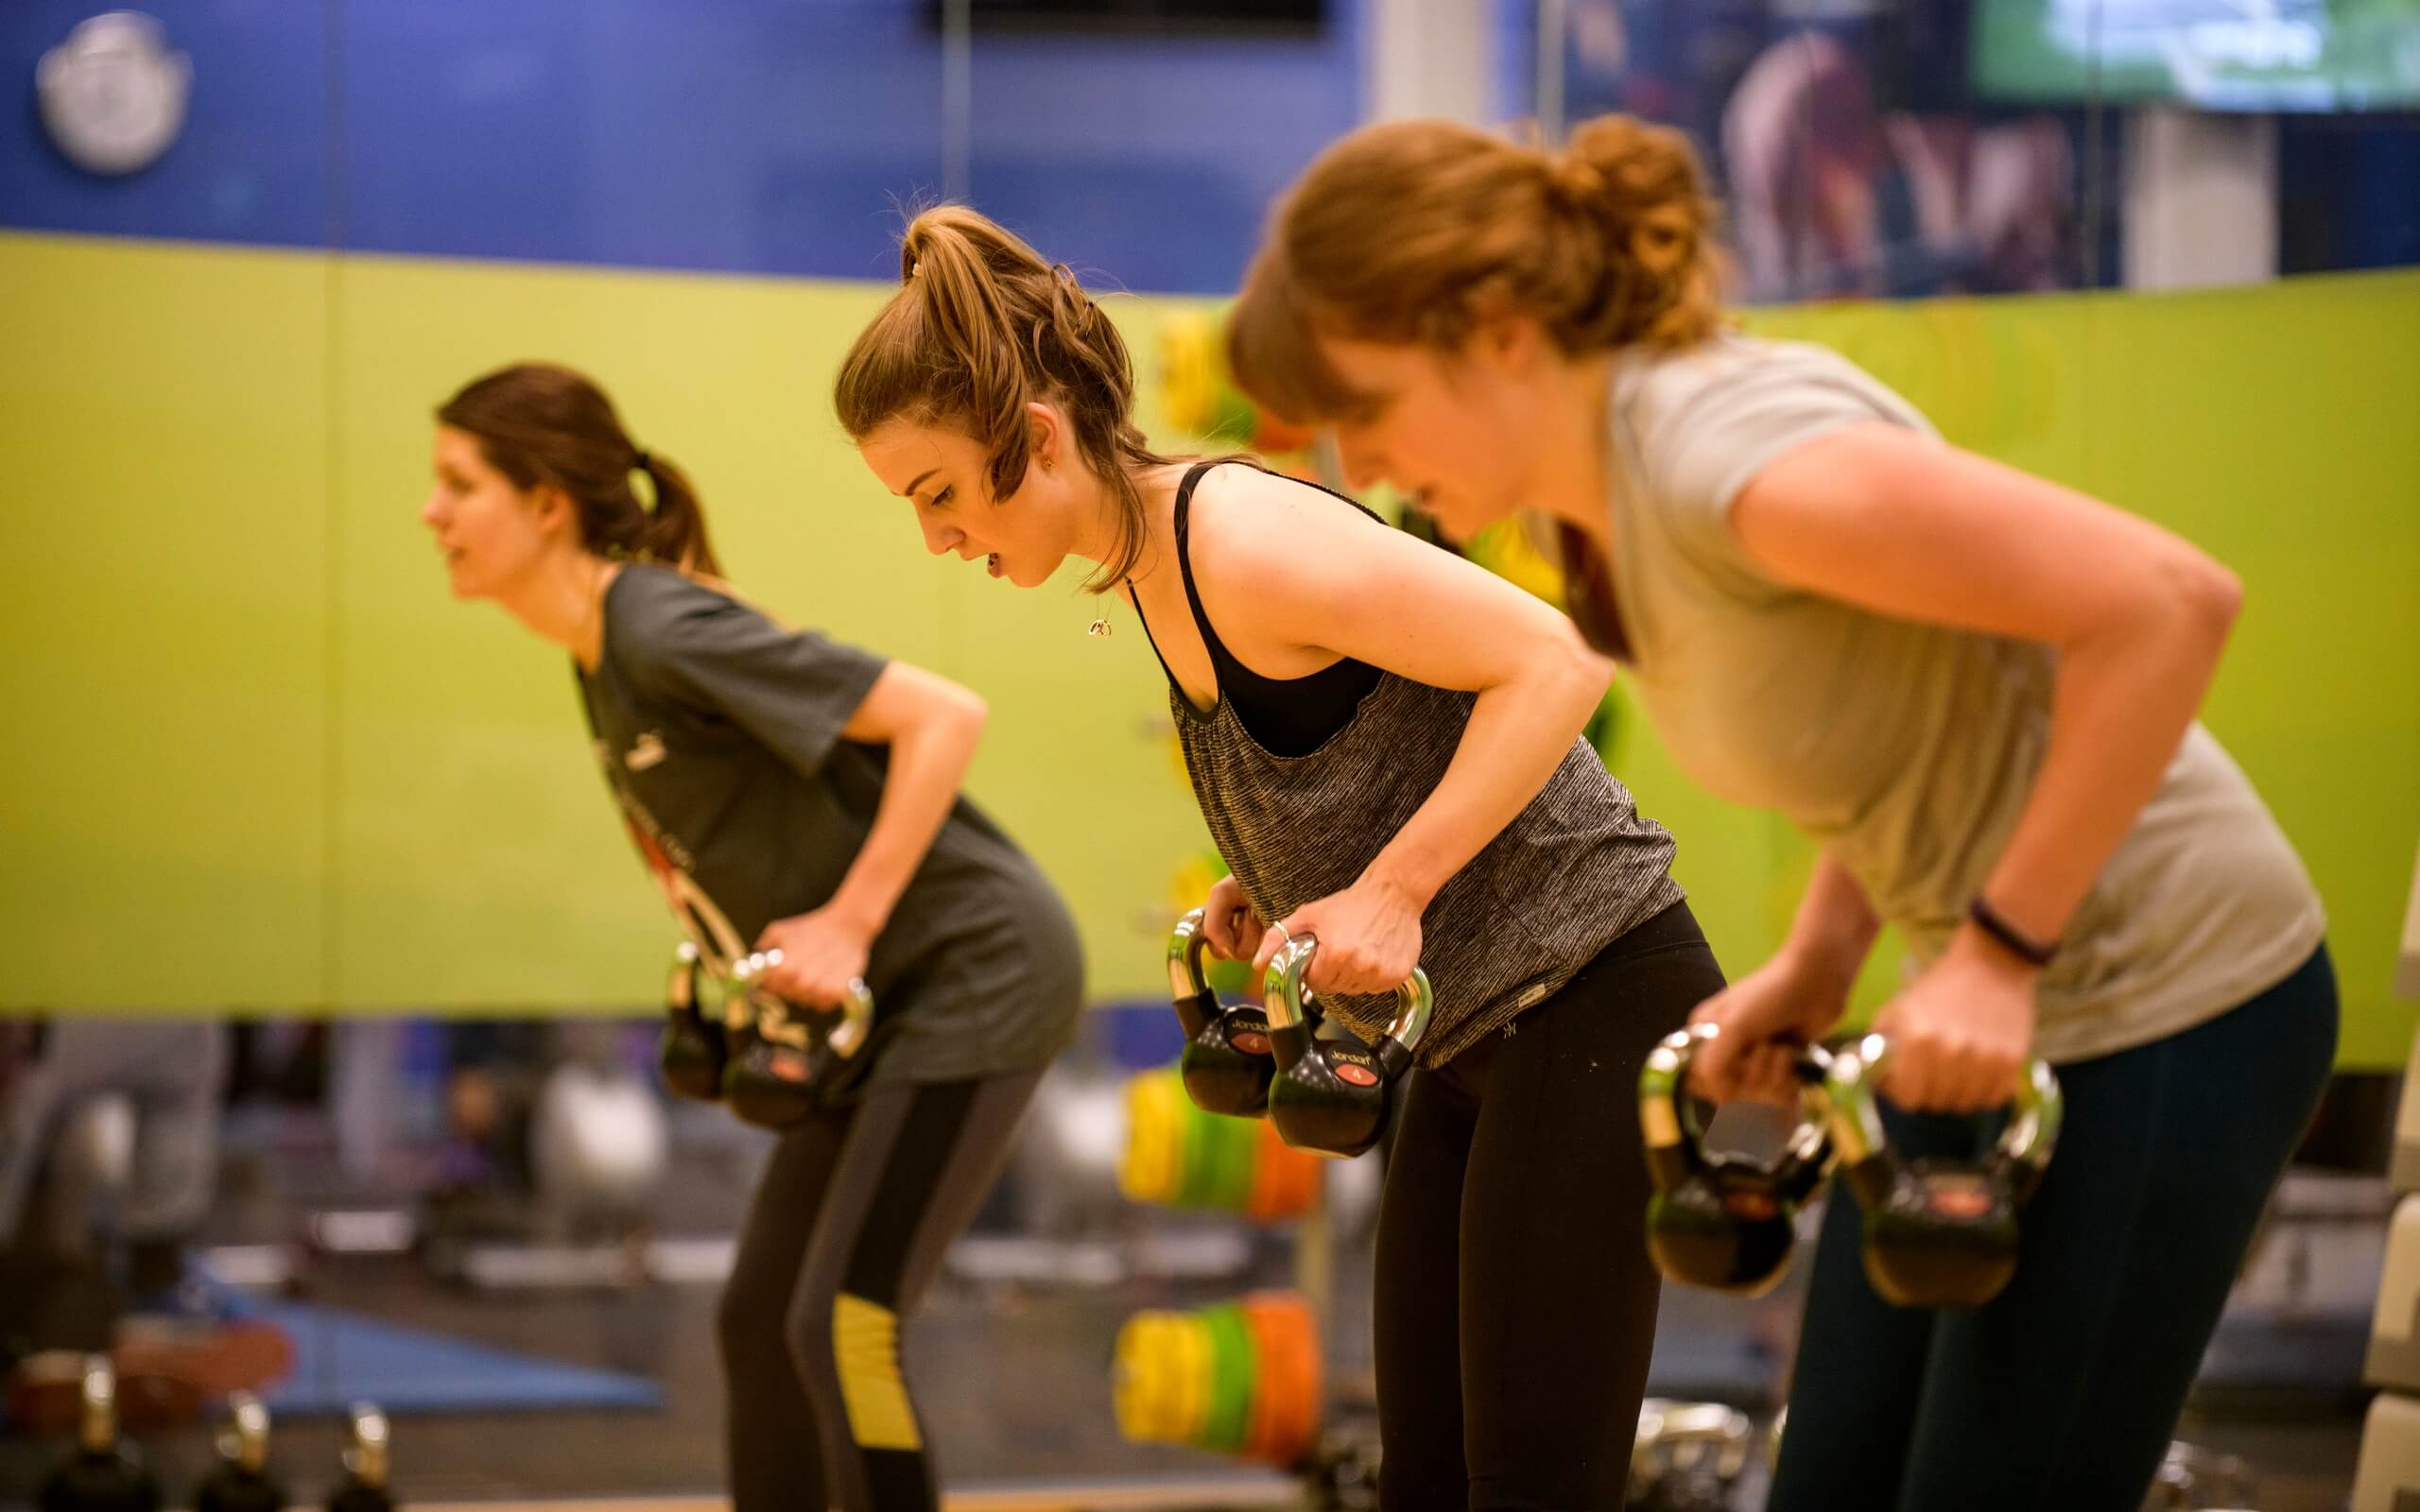 Three female students in a row lifting kettlebell weights in an exercise class